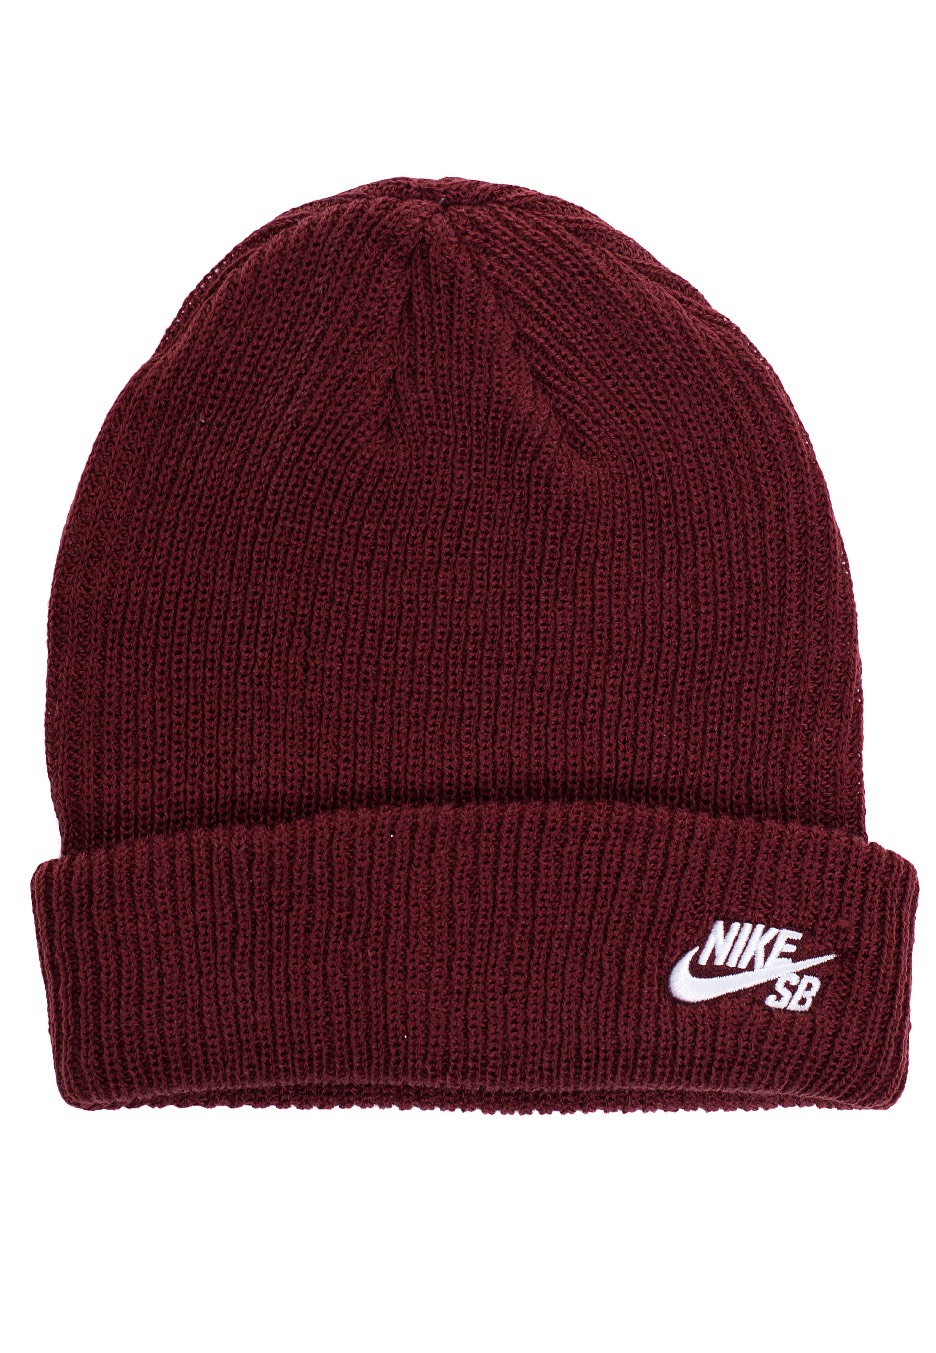 Nike - SB Fisherman Dark Team Red White - Beanie - Streetwear Shop -  Impericon.com Worldwide 15d1e90d43d